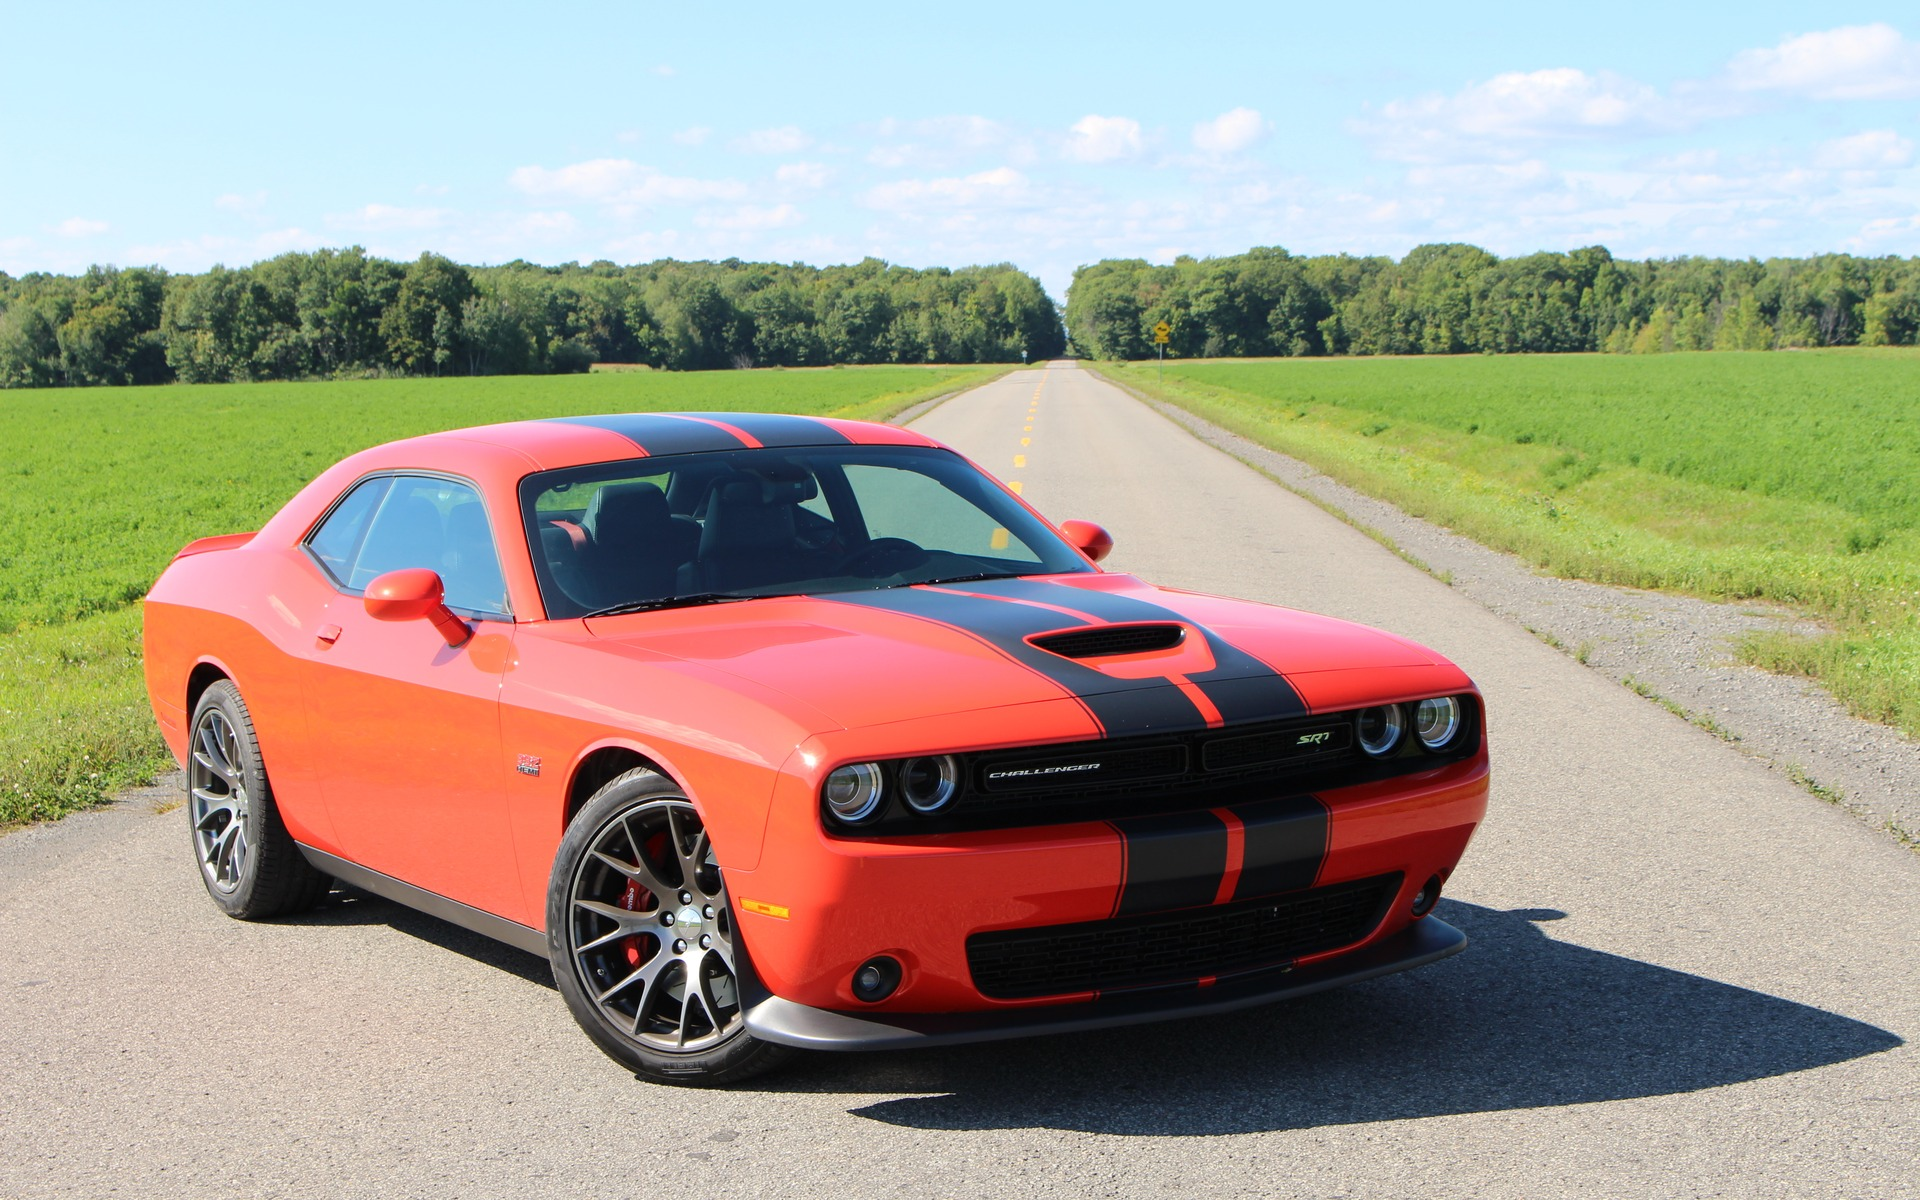 Challenger Srt 392 >> 2016 Dodge Challenger Srt 392 Fountain Of Youth The Car Guide